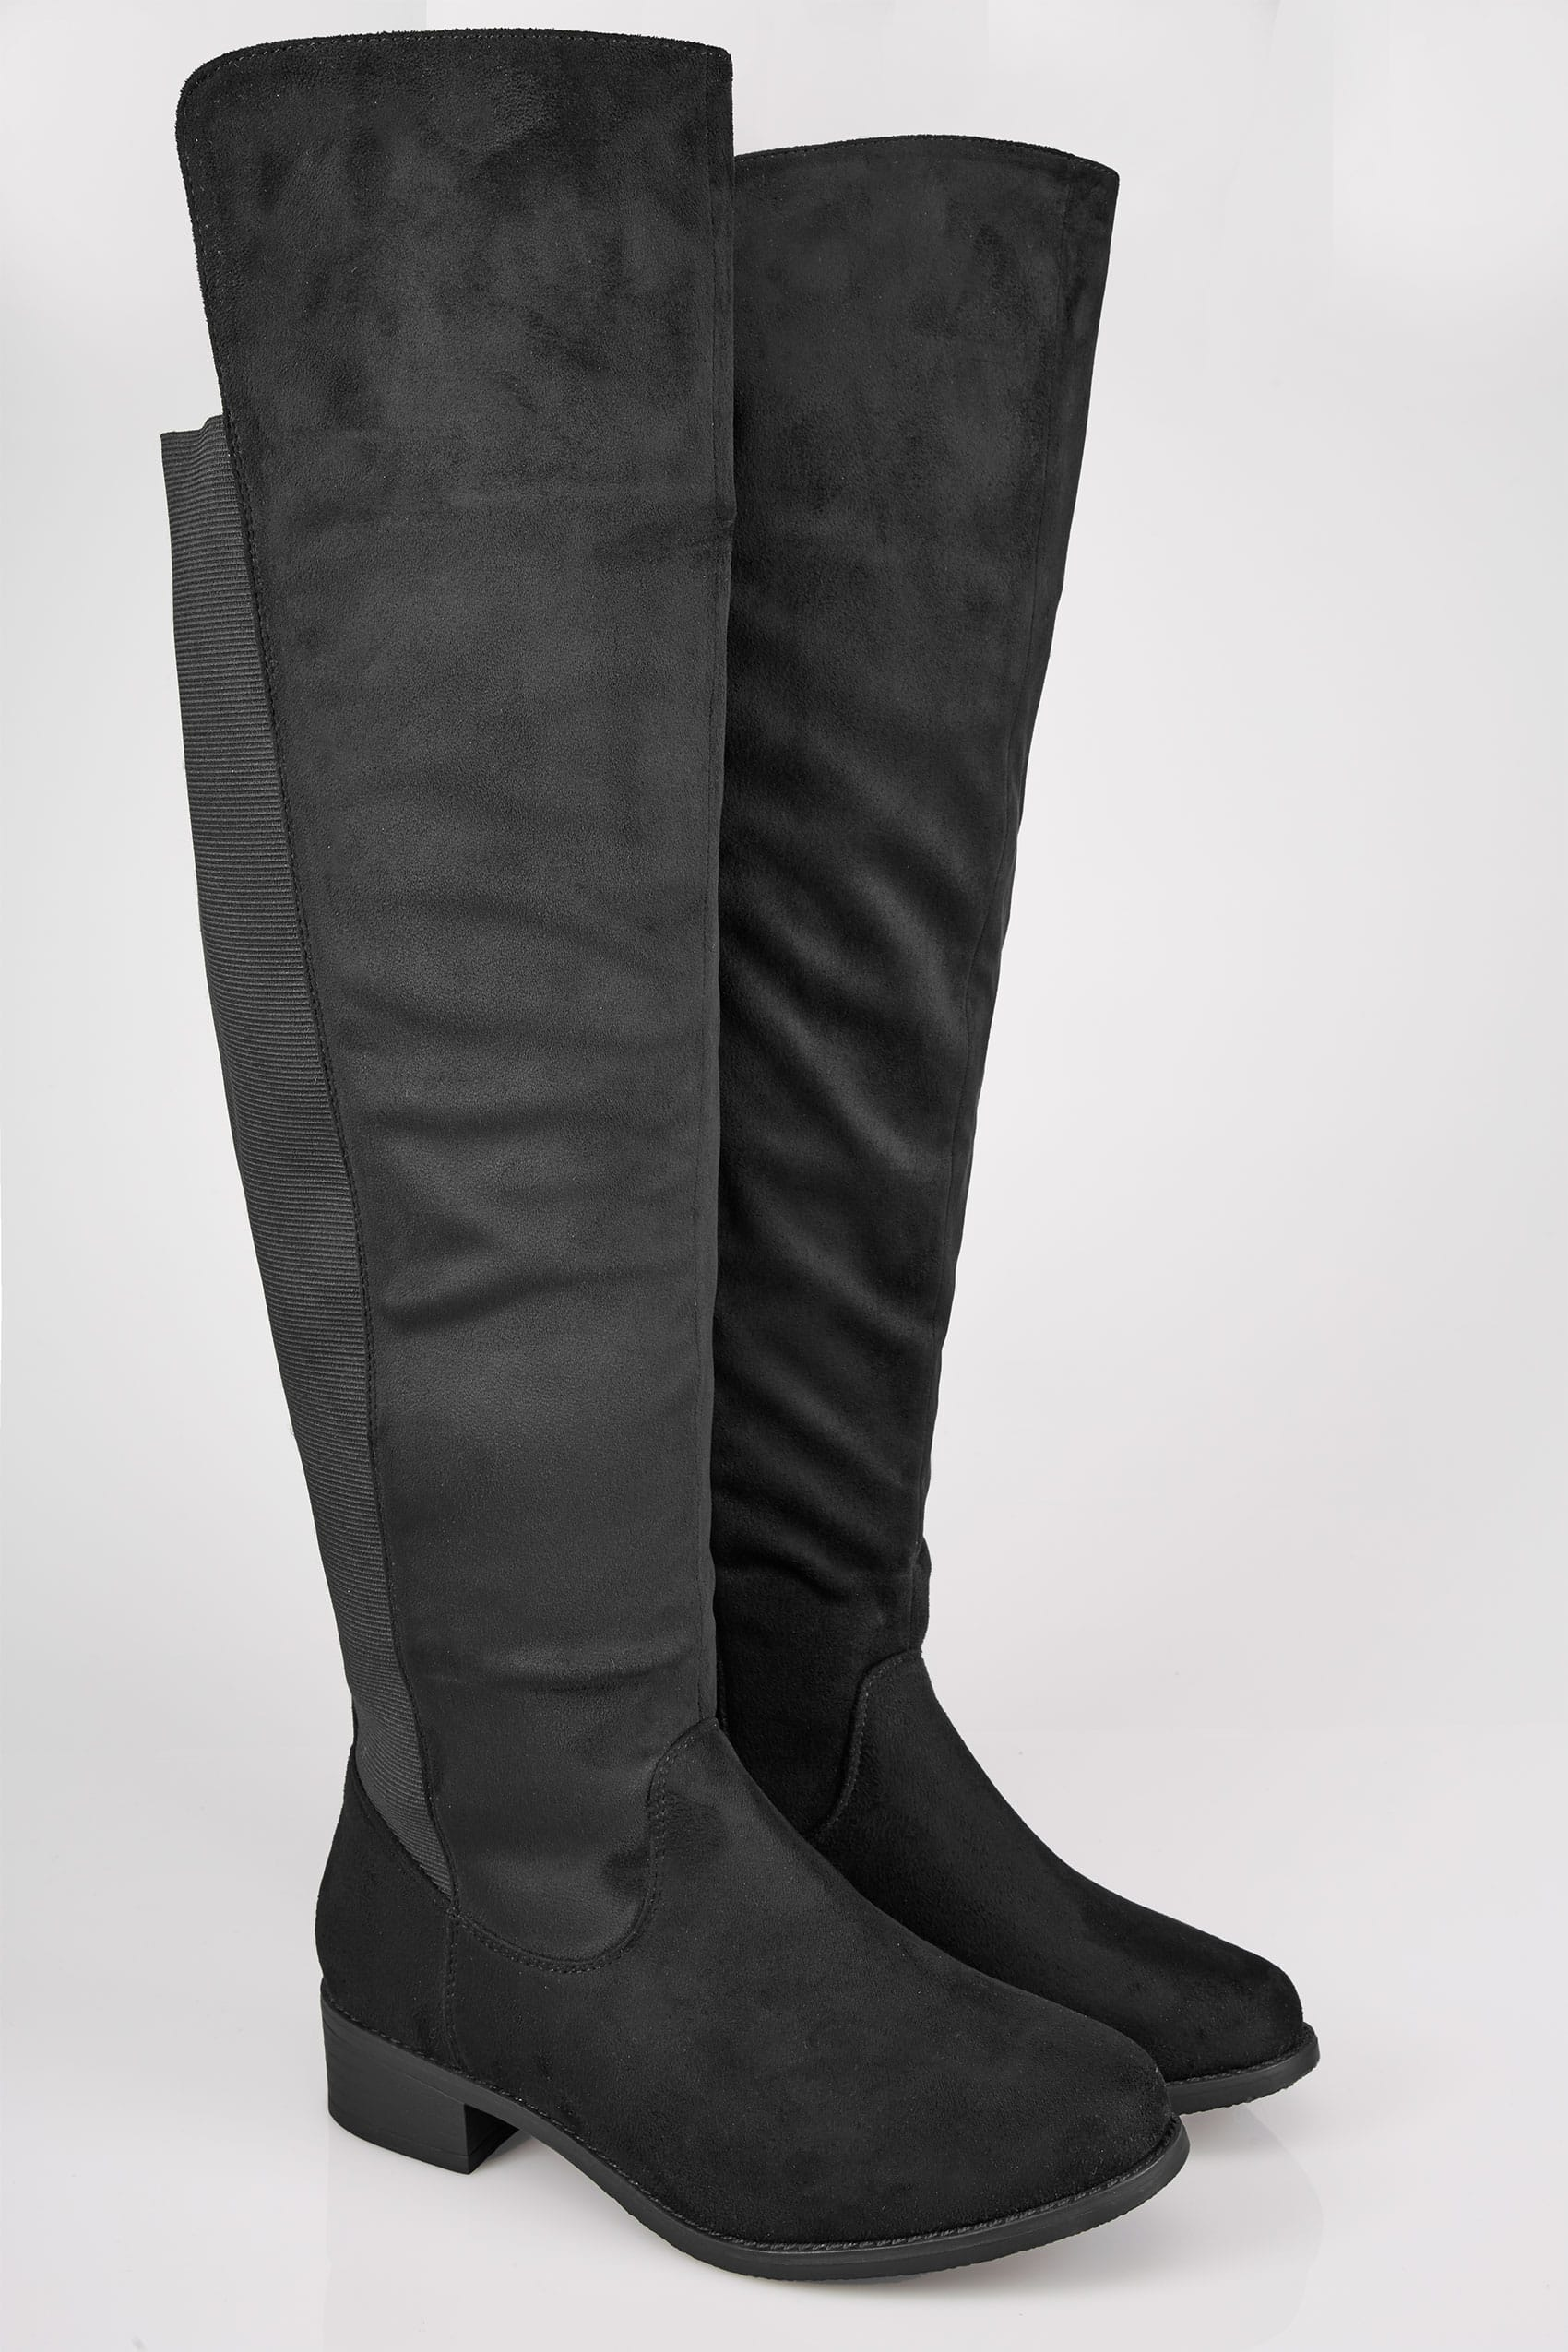 Black Xl Calf Over The Knee Boots With Stretch Panel